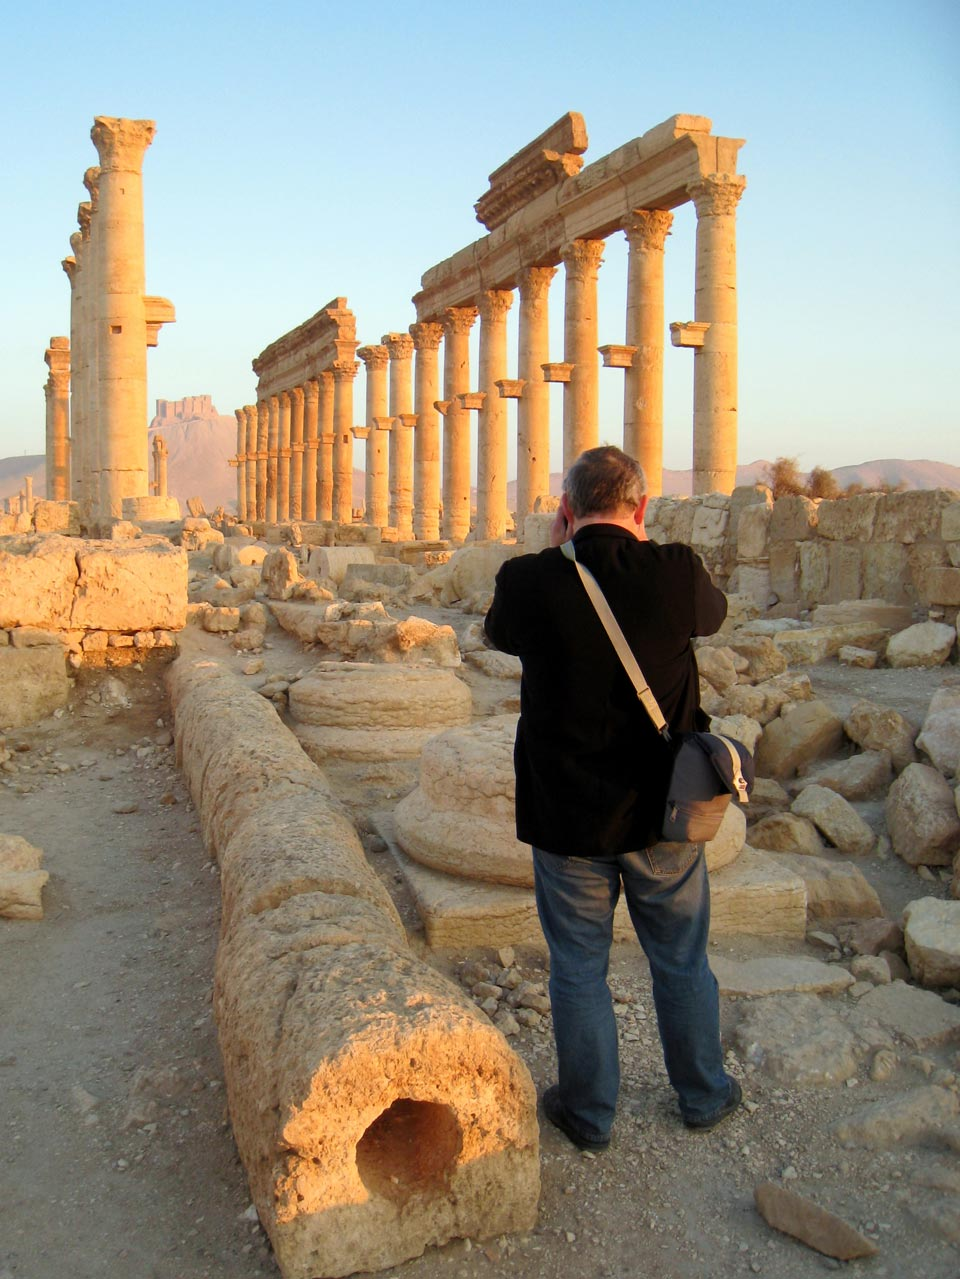 Colonnade at Palmyra. © Mark Lowey 2021. All rights reserved.